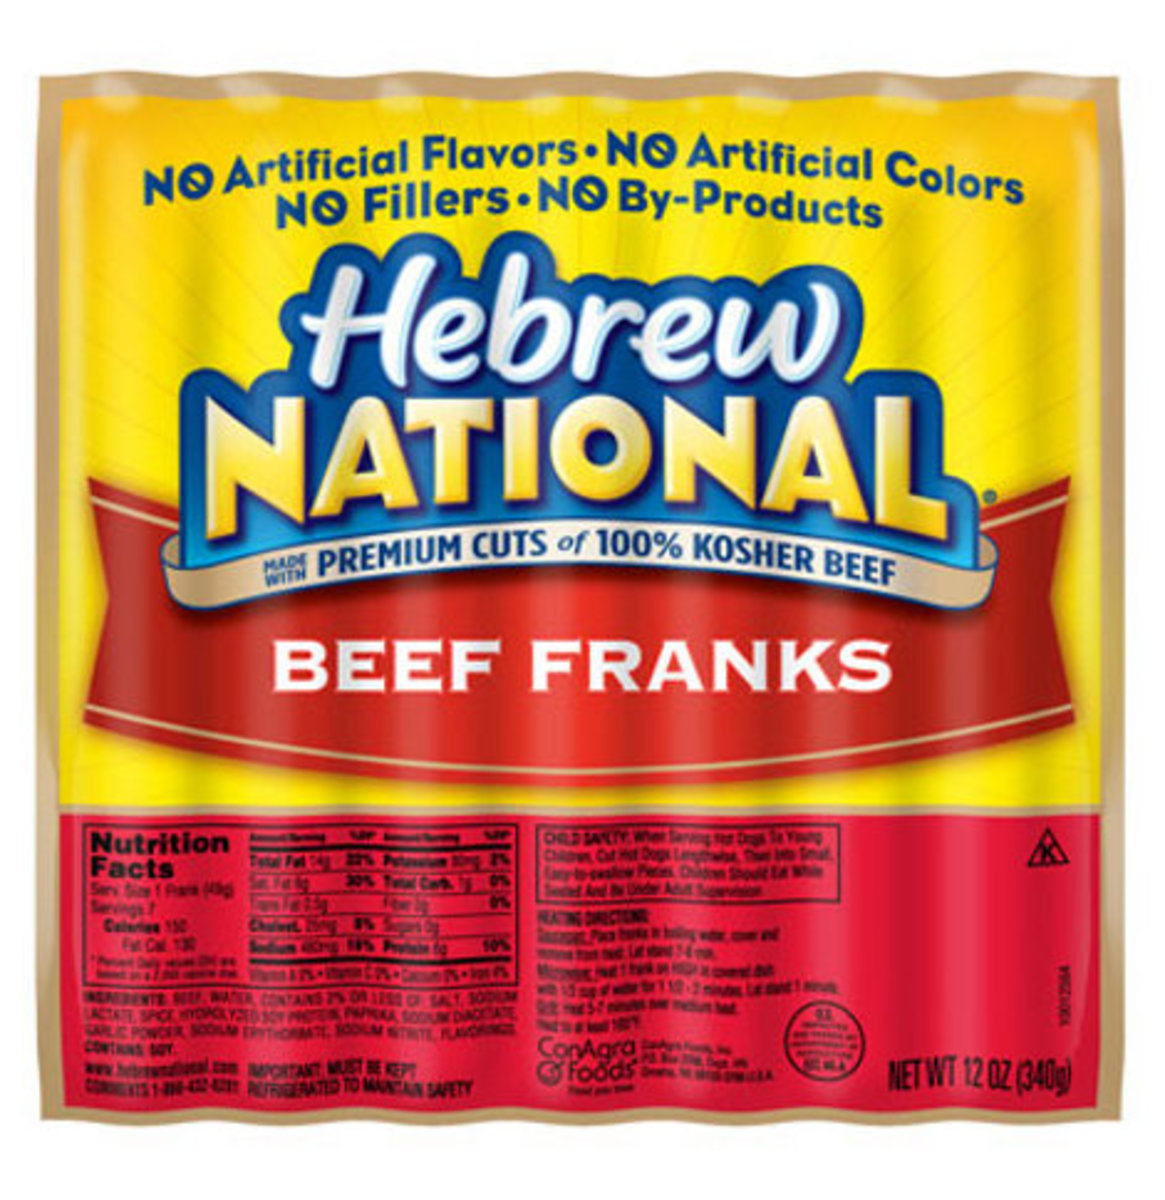 4. Hebrew National Kosher Hot Dogs